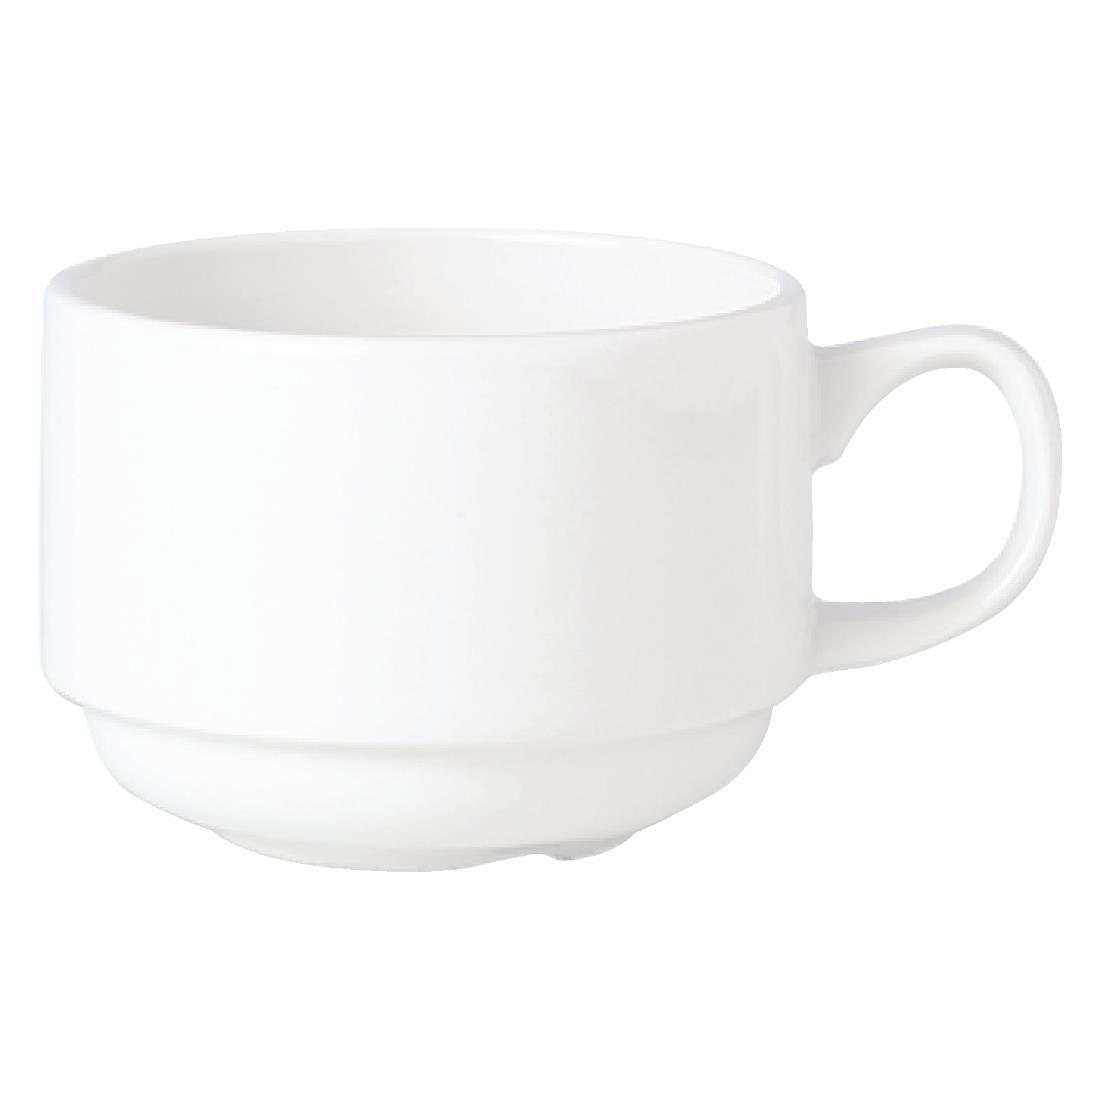 V0101 - Steelite Simplicity White Stacking Slimline Cup